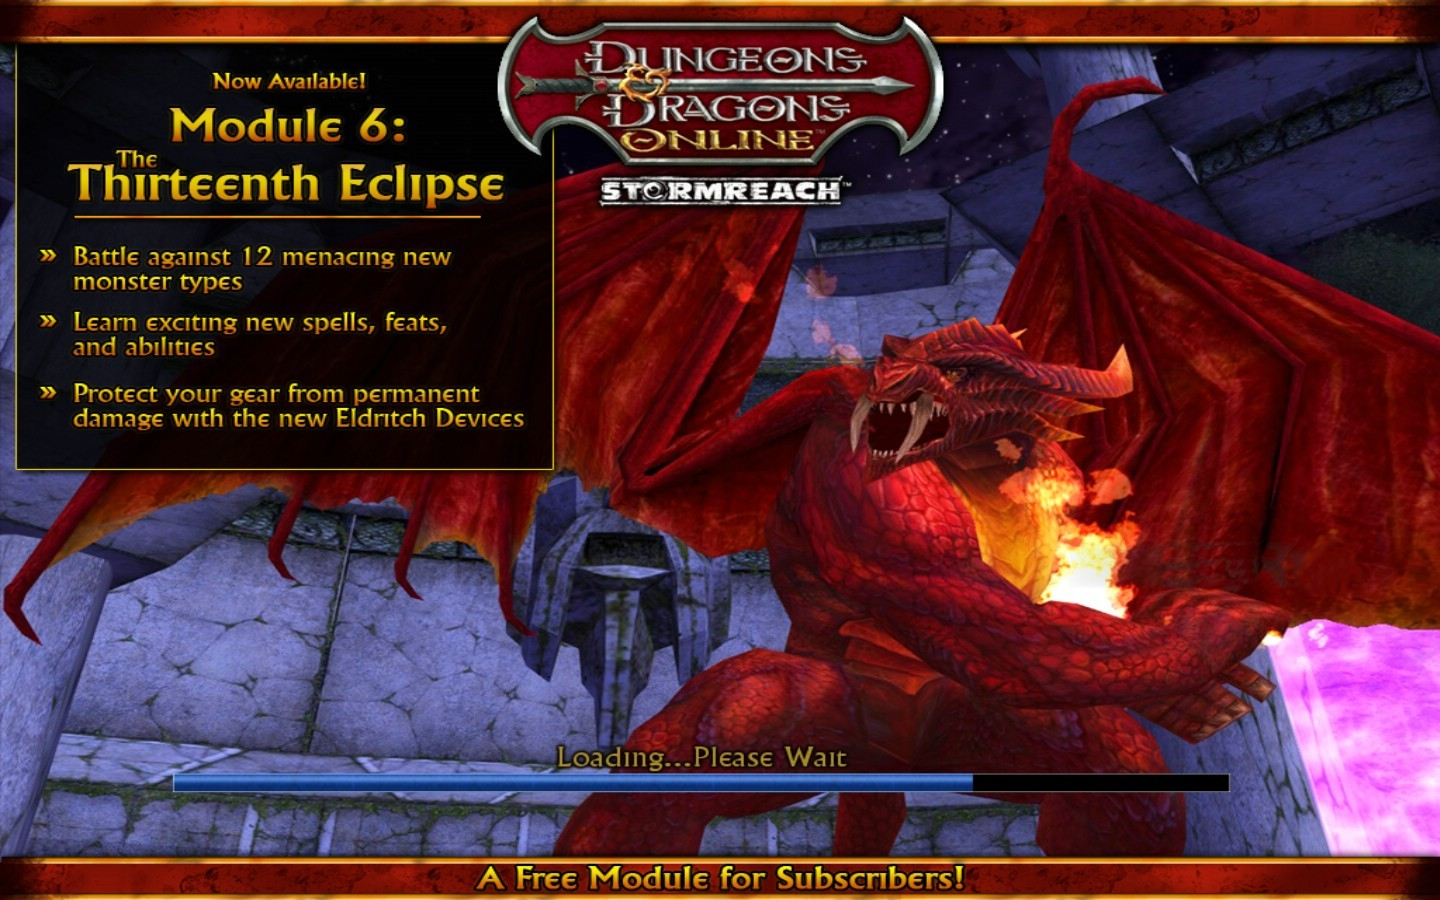 Dungeons & Dragons Online - Mod 6 Splash Screen